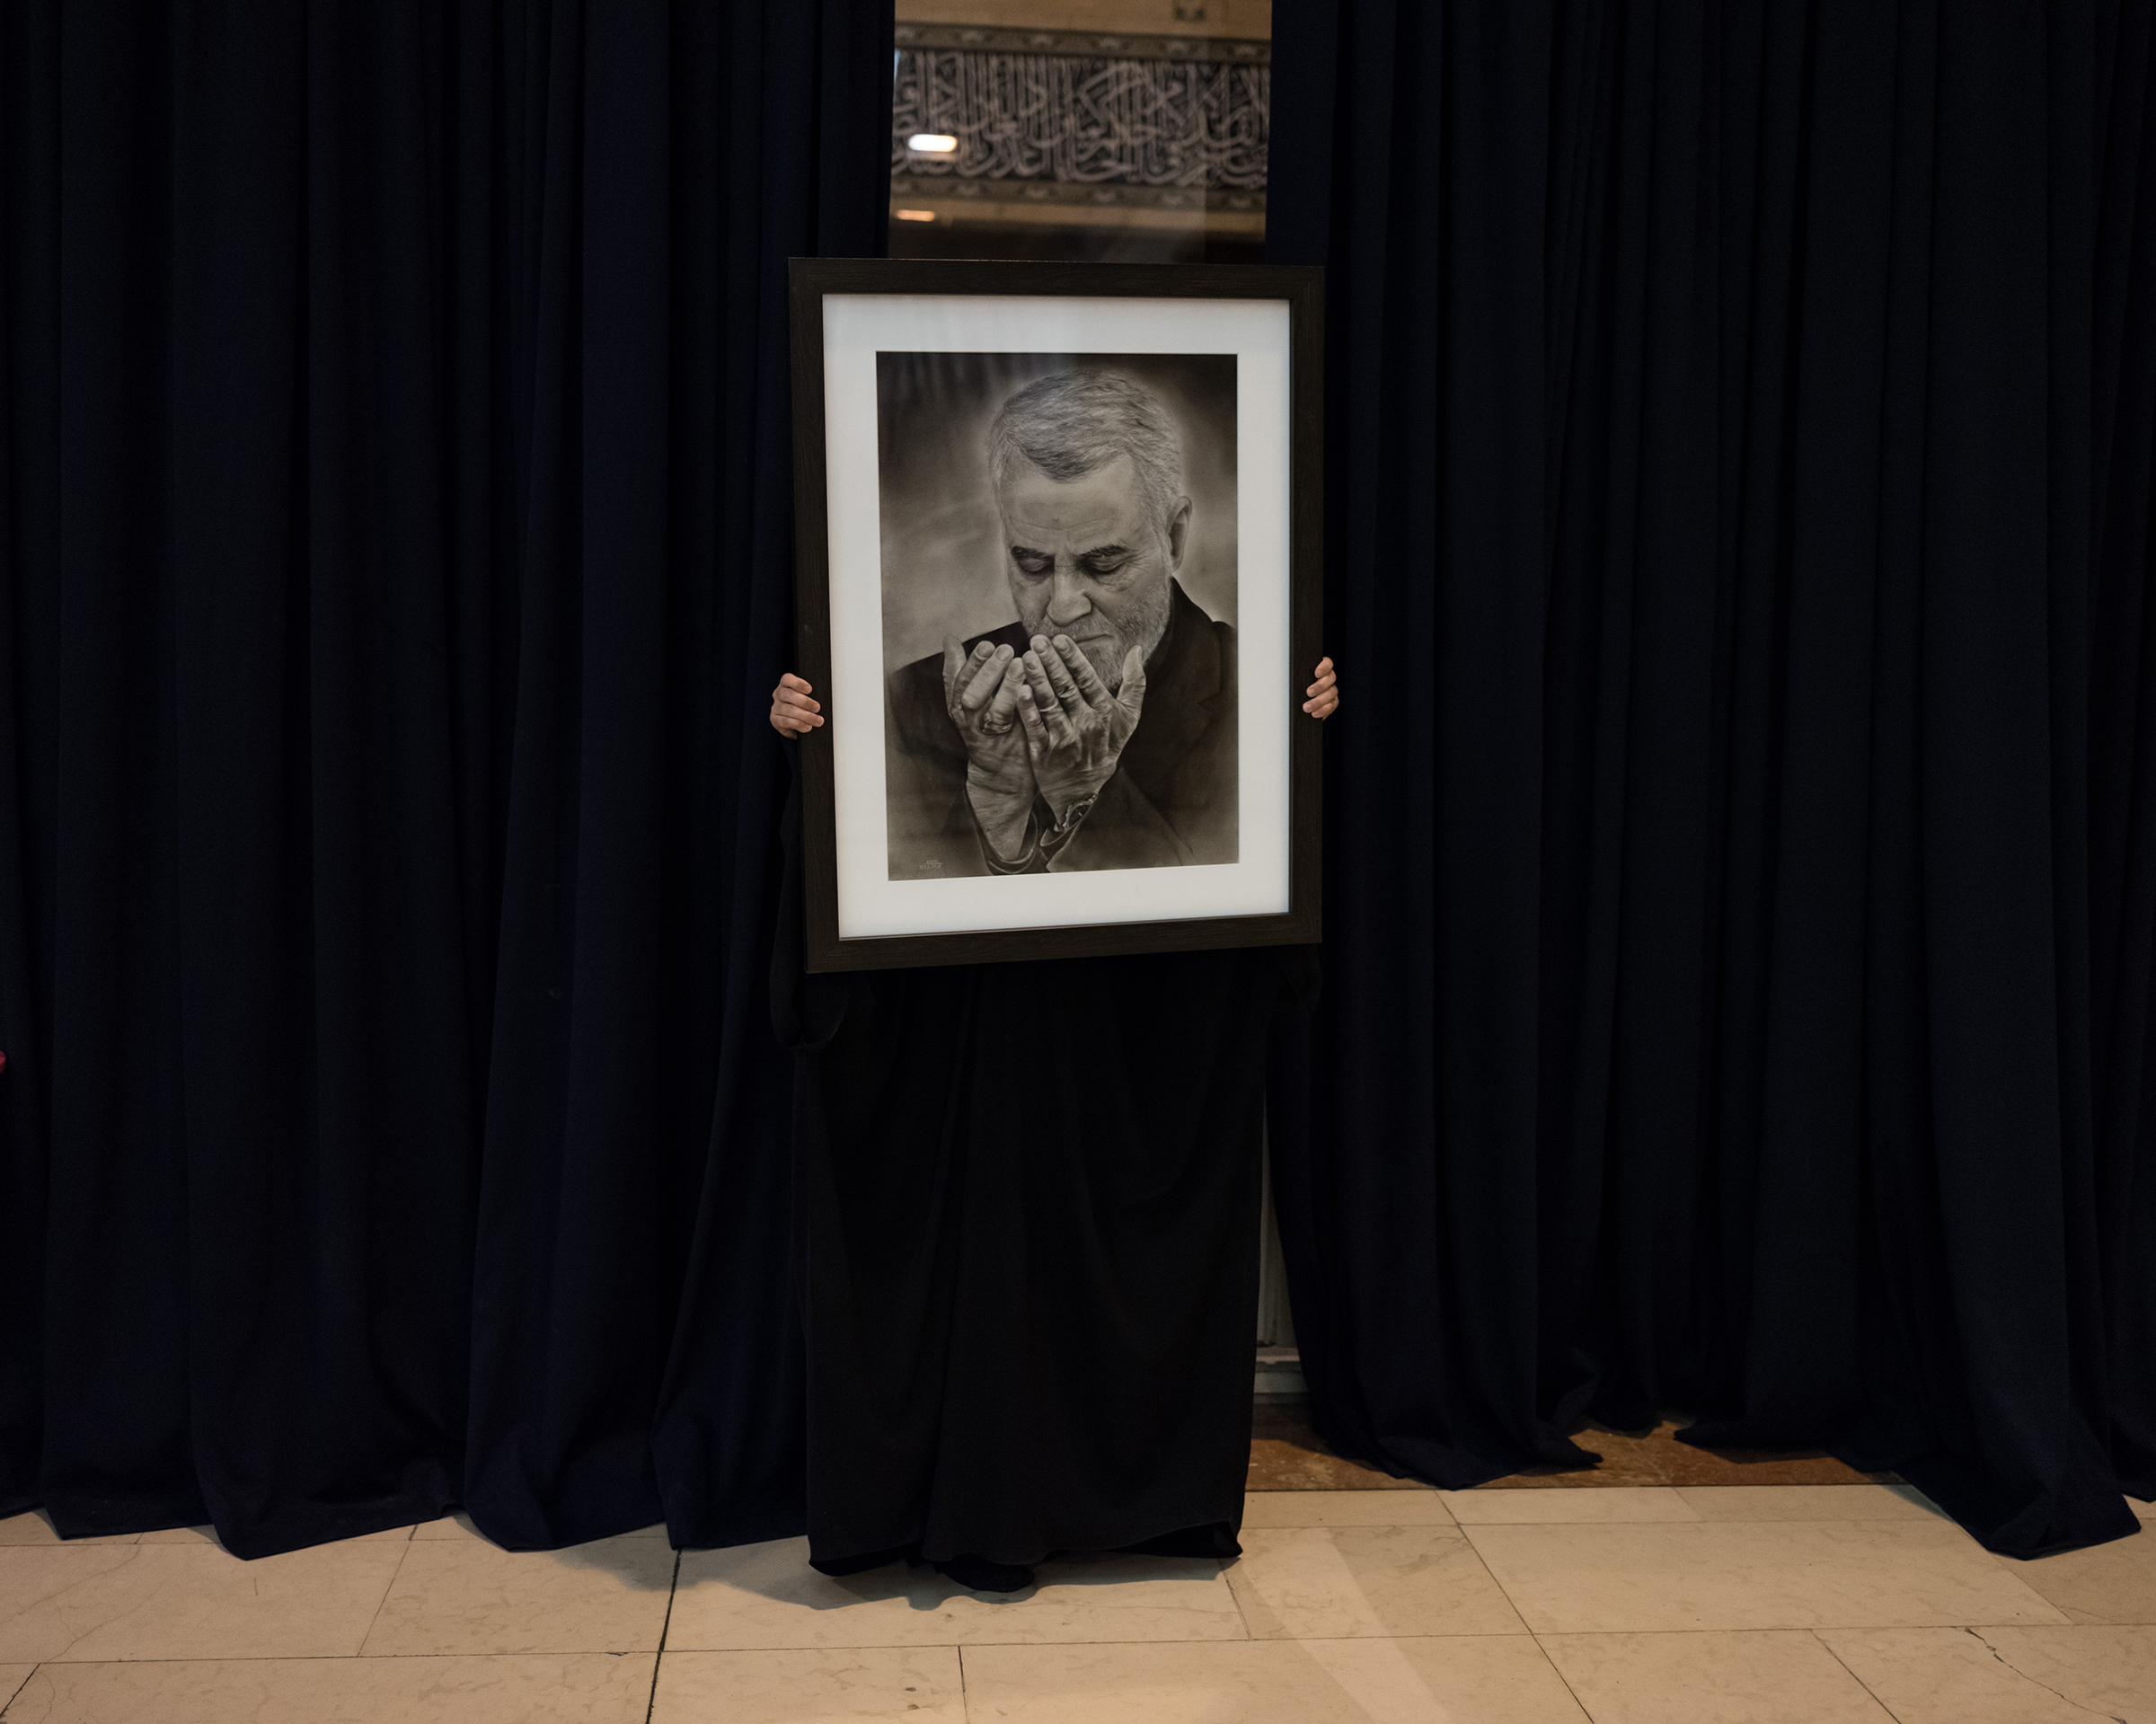 A portrait of Soleimani is held during the three official days of mourning.